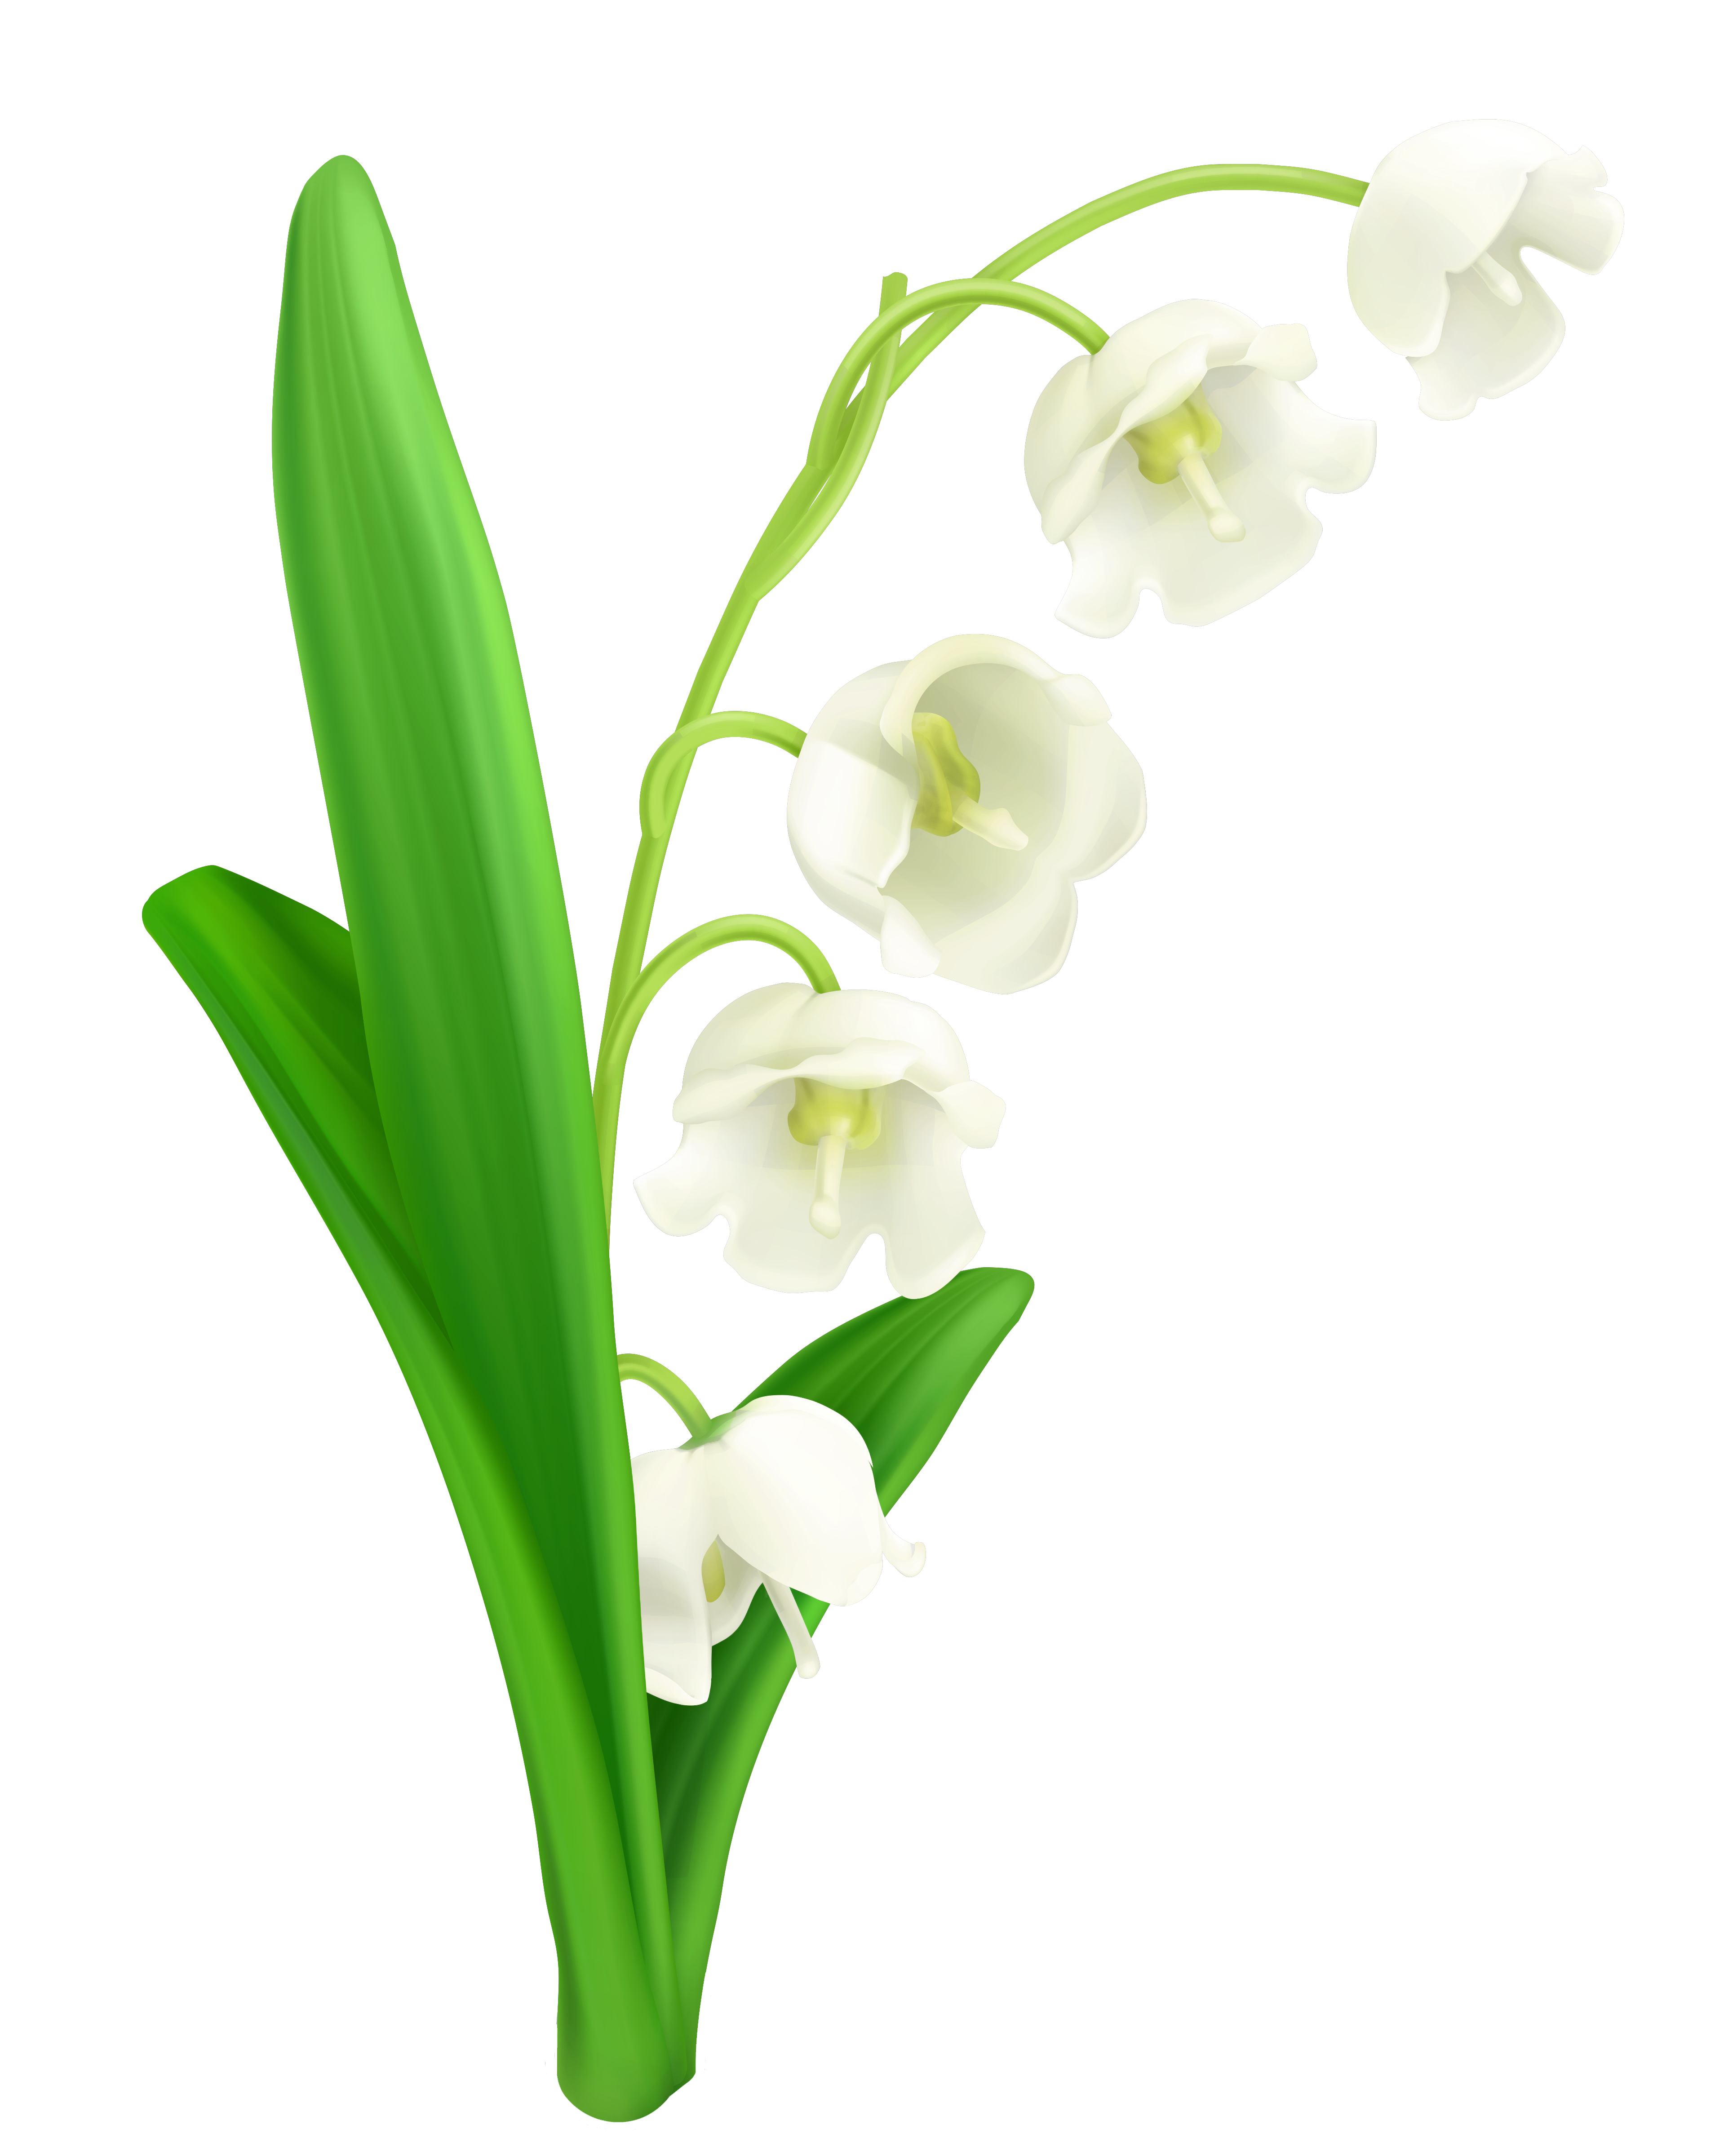 svg transparent download Valley clipart. Lily of the png